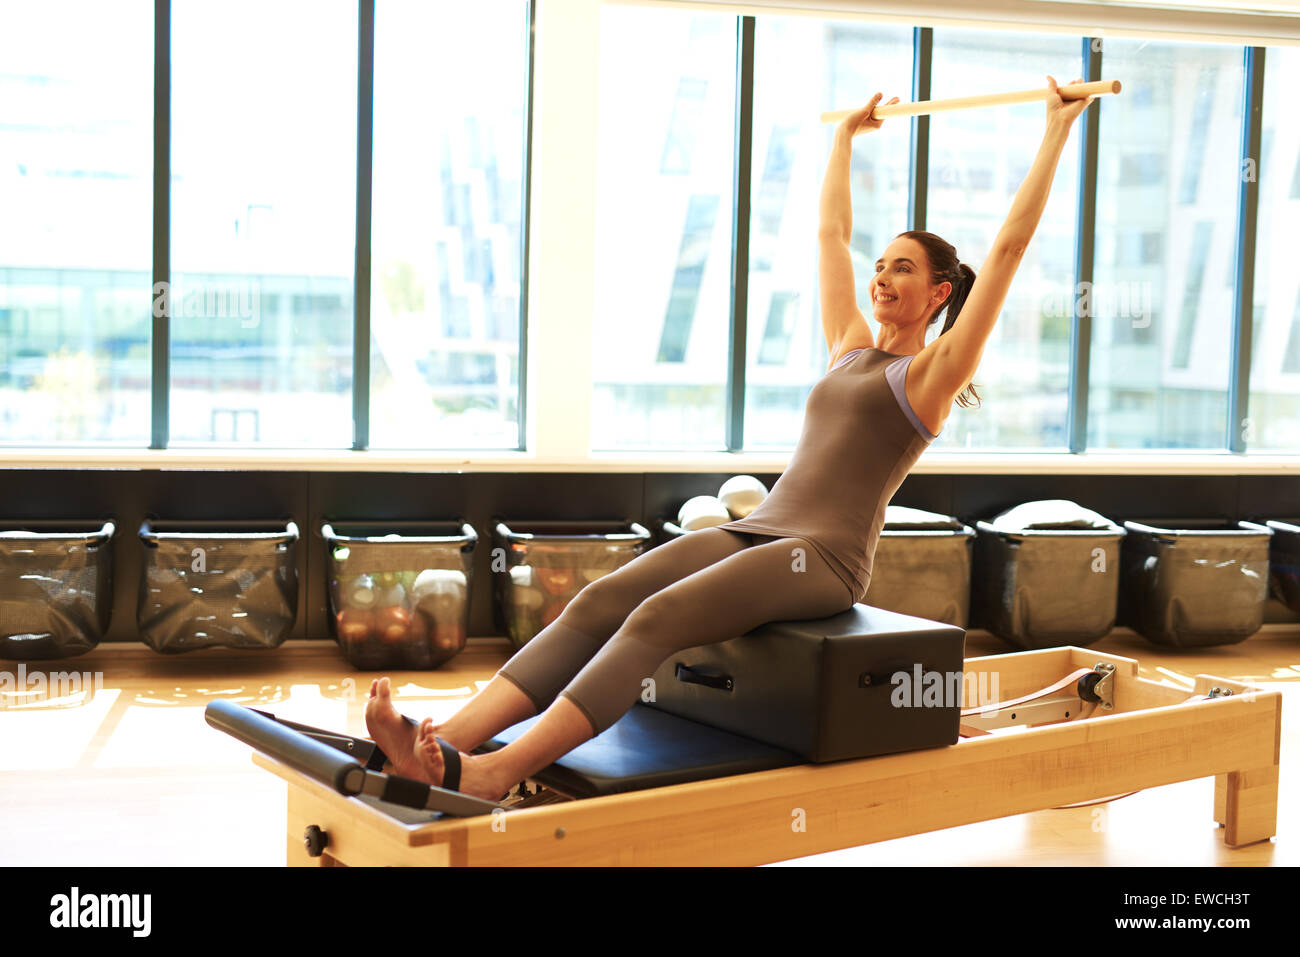 Healthy Smiling Brunette Woman Wearing Leotard and Practicing Pilates in Exercise Studio - Stock Image